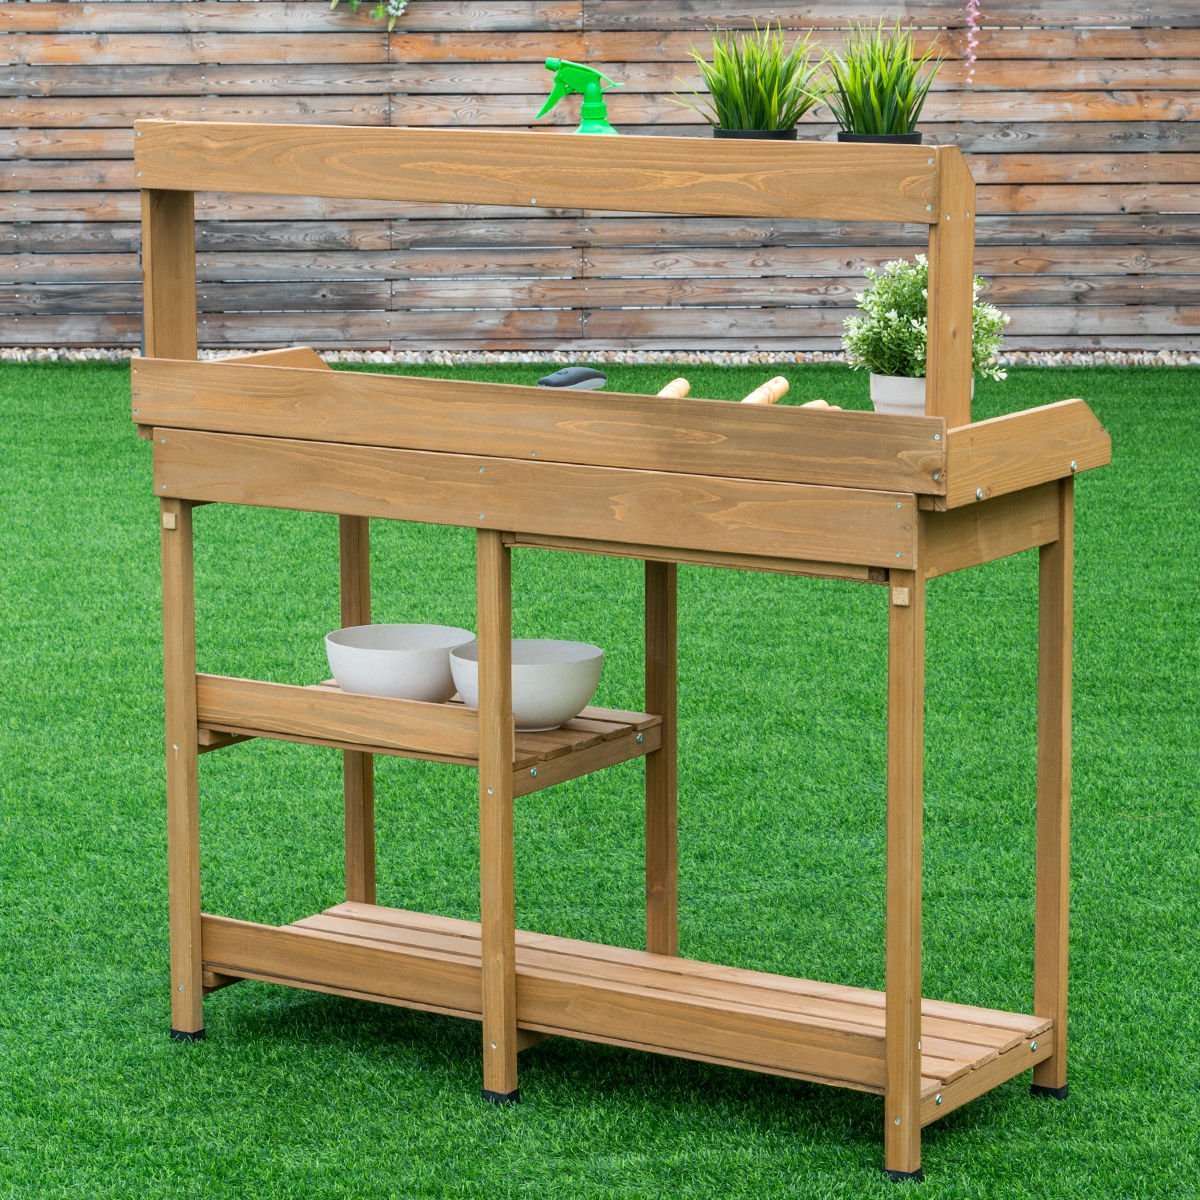 Giantex Potting Table Bench Outdoor Indoor Work Station Garden Planting Wood Shelves by Giantex (Image #4)